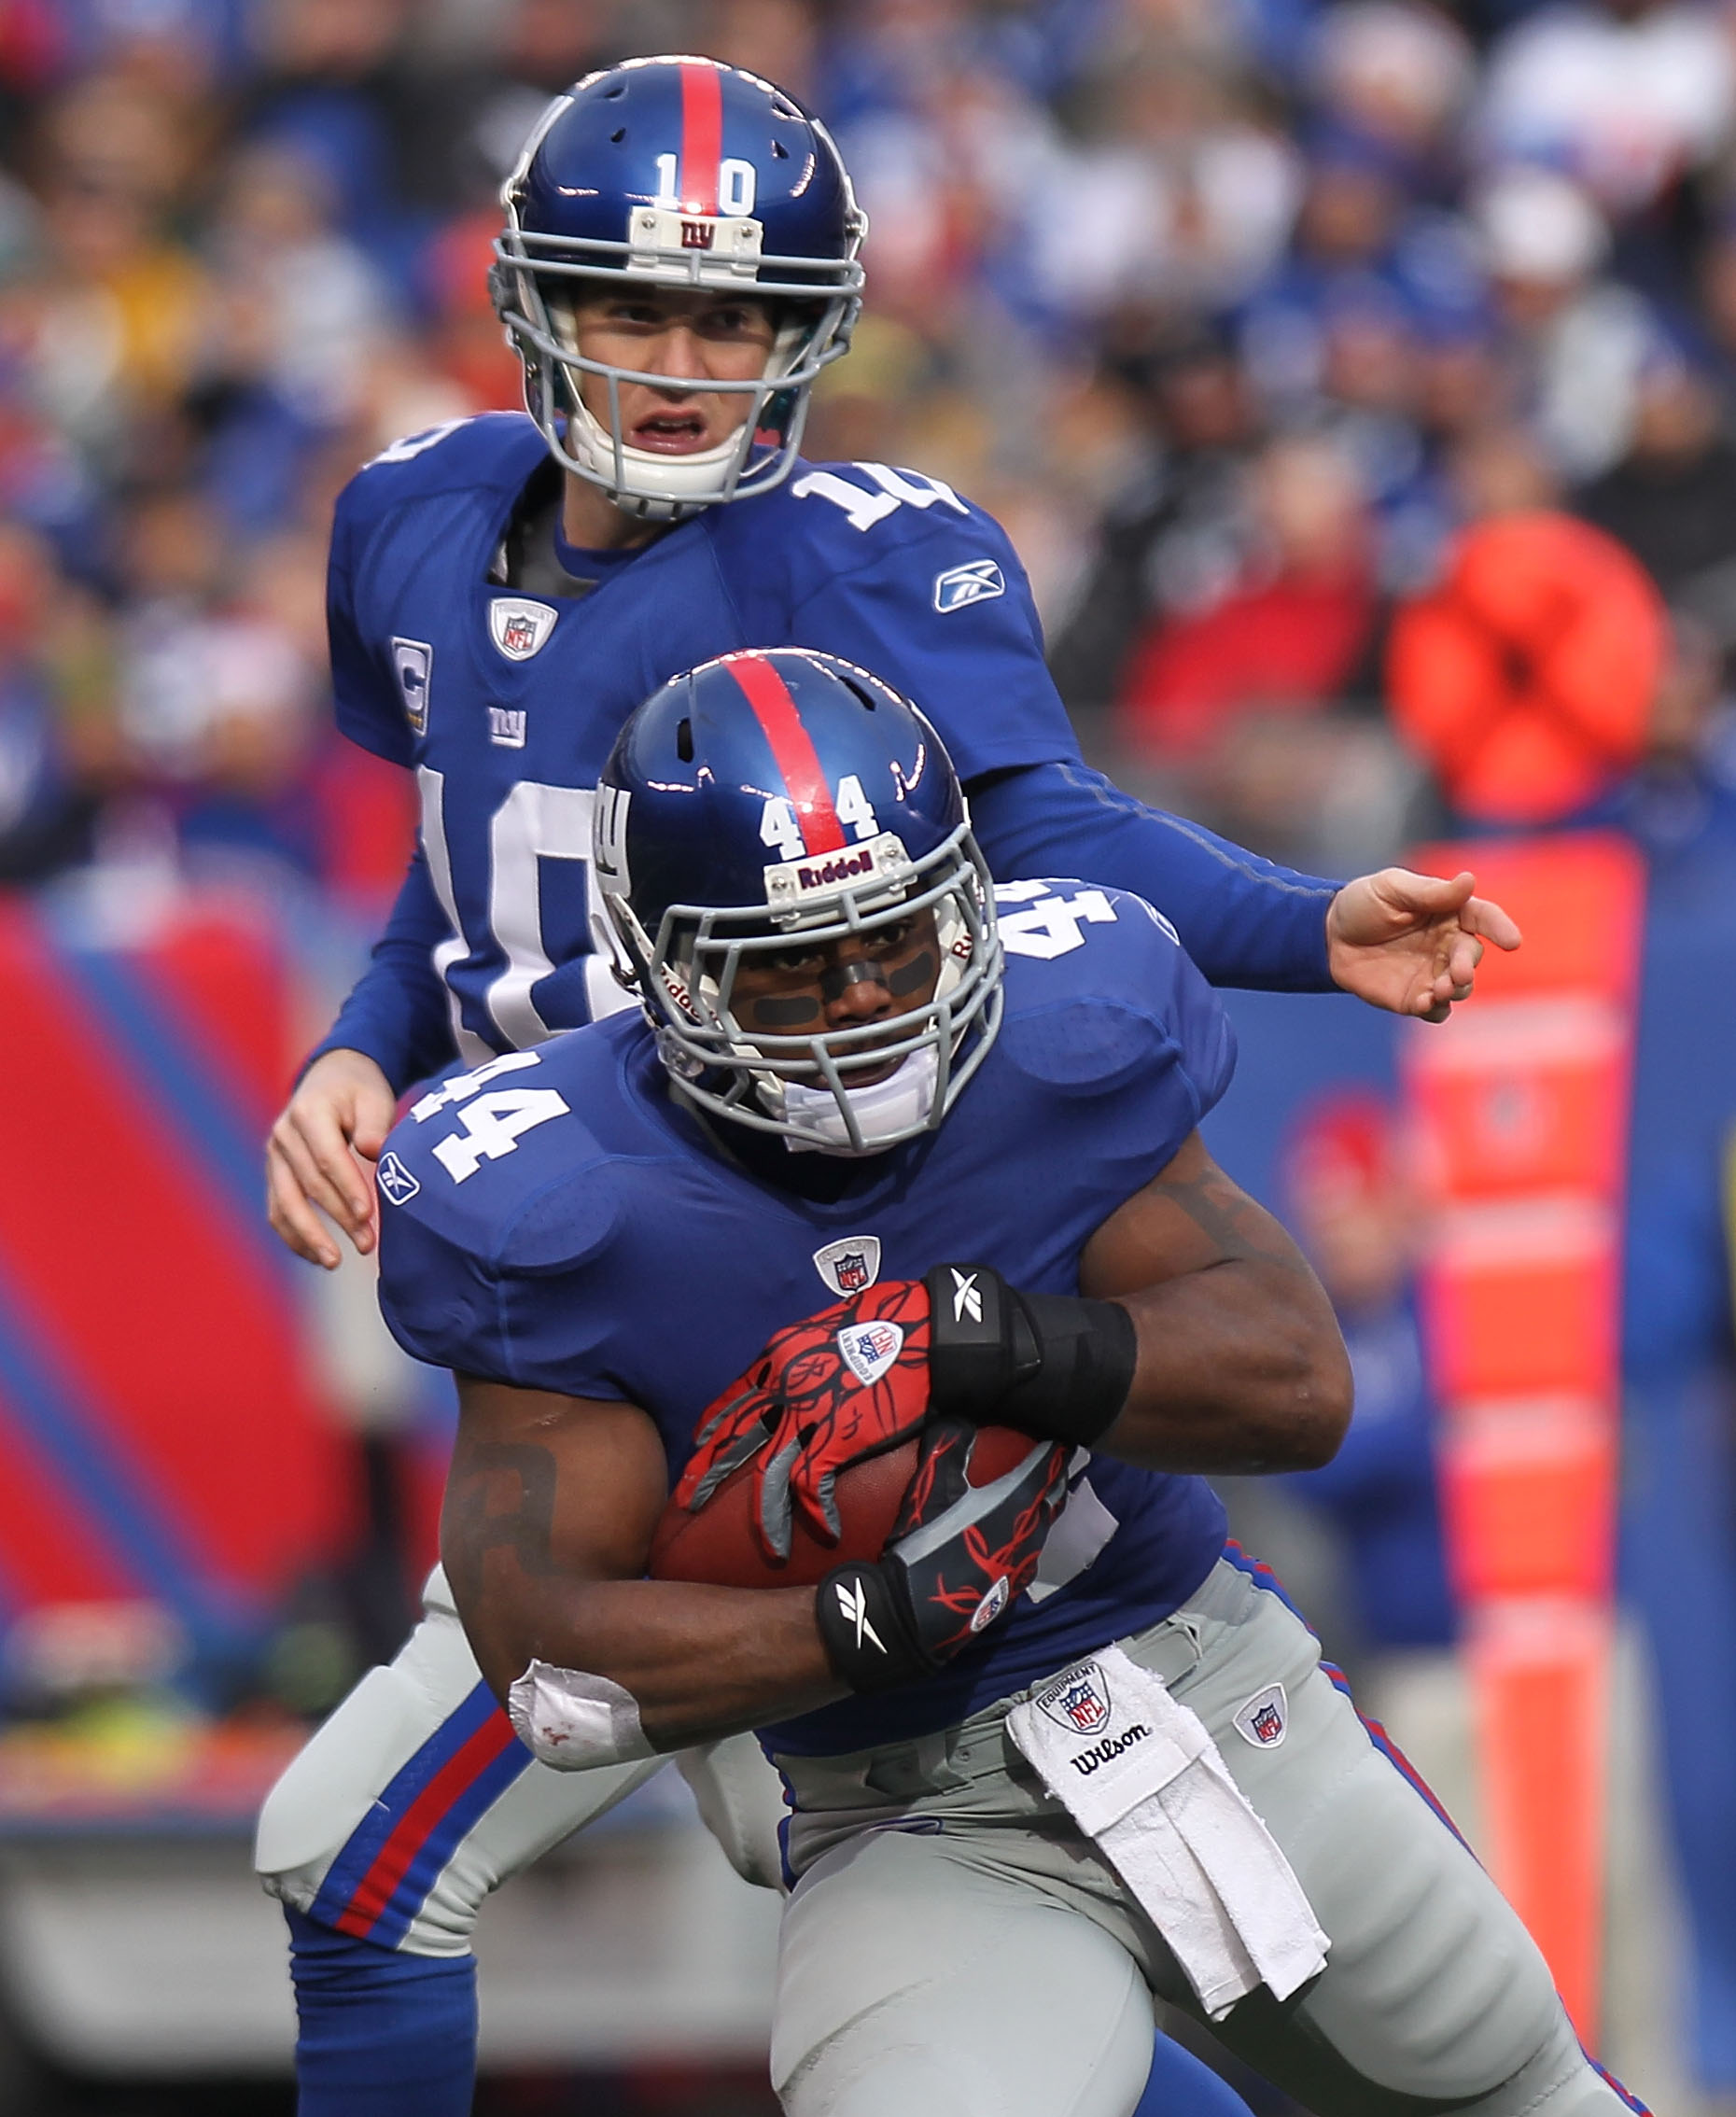 EAST RUTHERFORD, NJ - DECEMBER 19:  Eli Manning #10 of the New York Giants hands the ball off to Ahmad Bradshaw #44 against the Philadelphia Eagles at New Meadowlands Stadium on December 19, 2010 in East Rutherford, New Jersey.  (Photo by Nick Laham/Getty